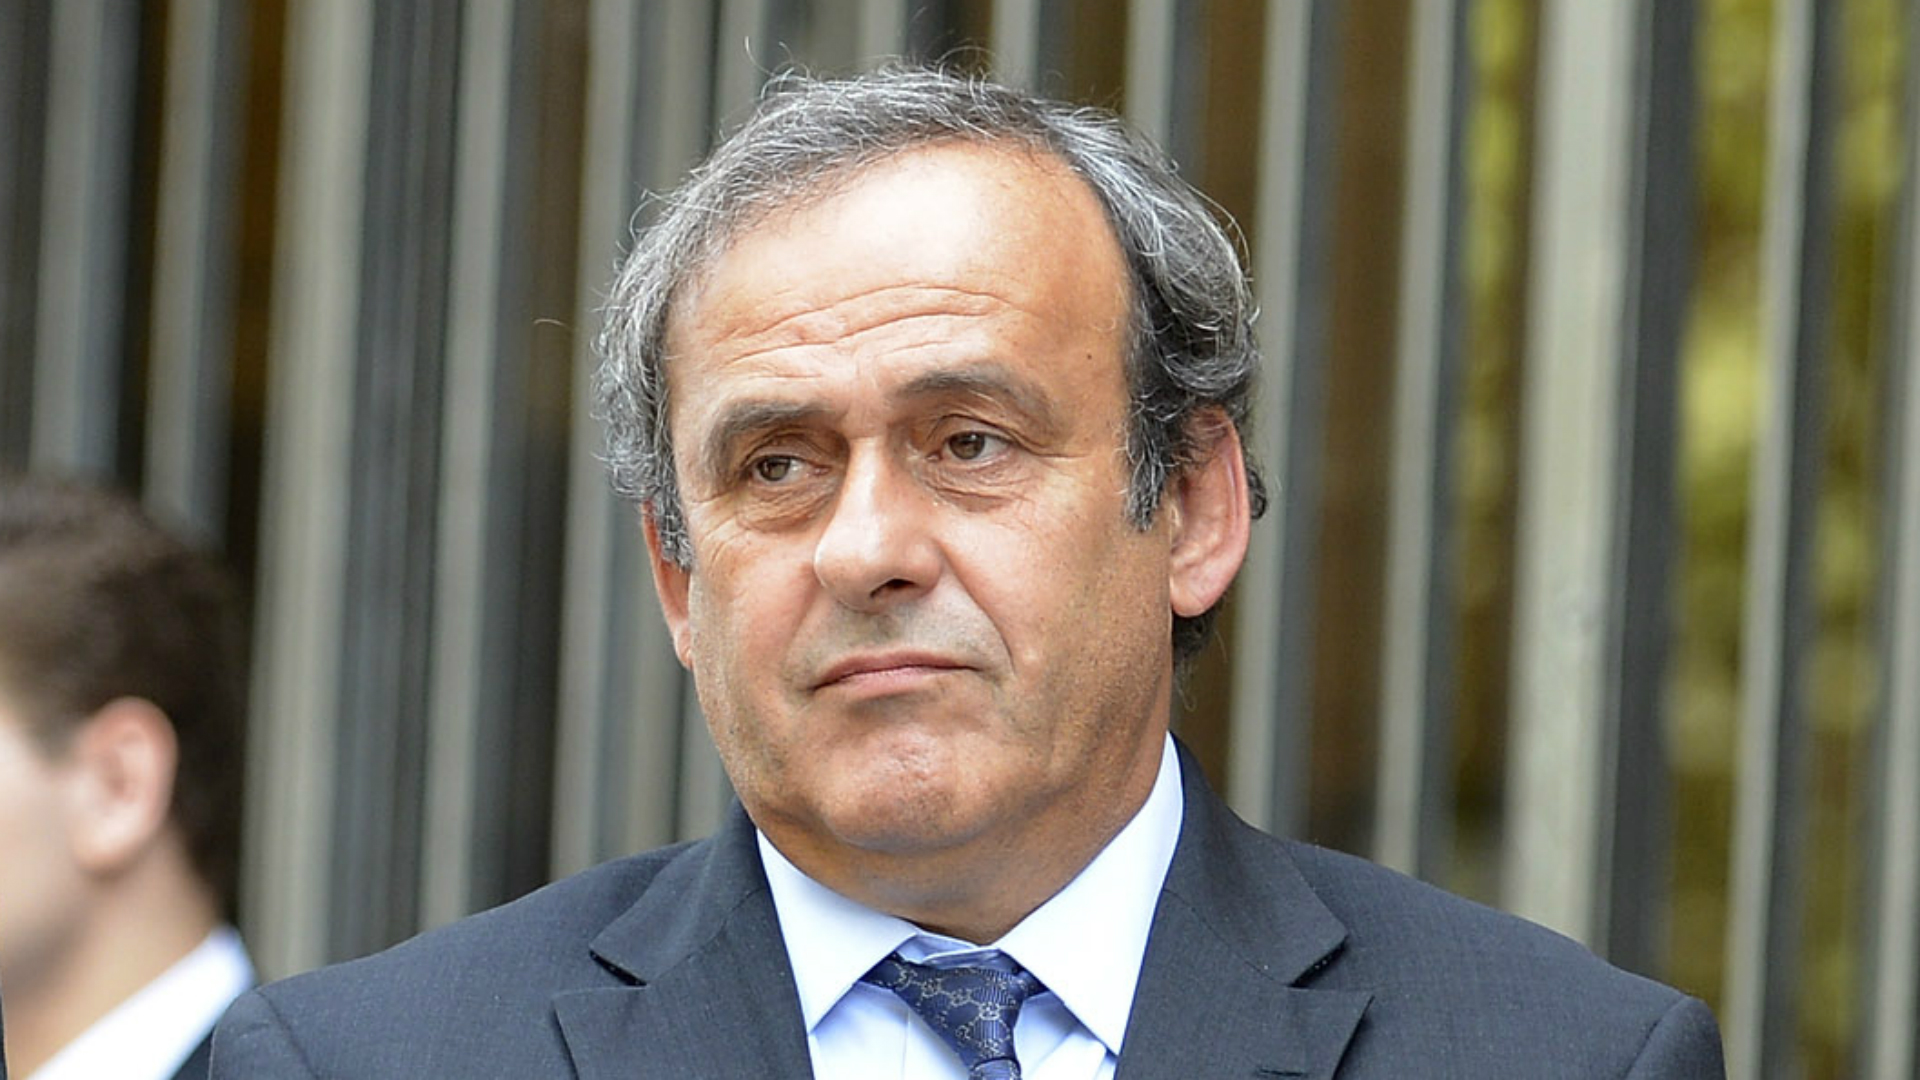 Platini's European Court of Human Rights appeal dismissed